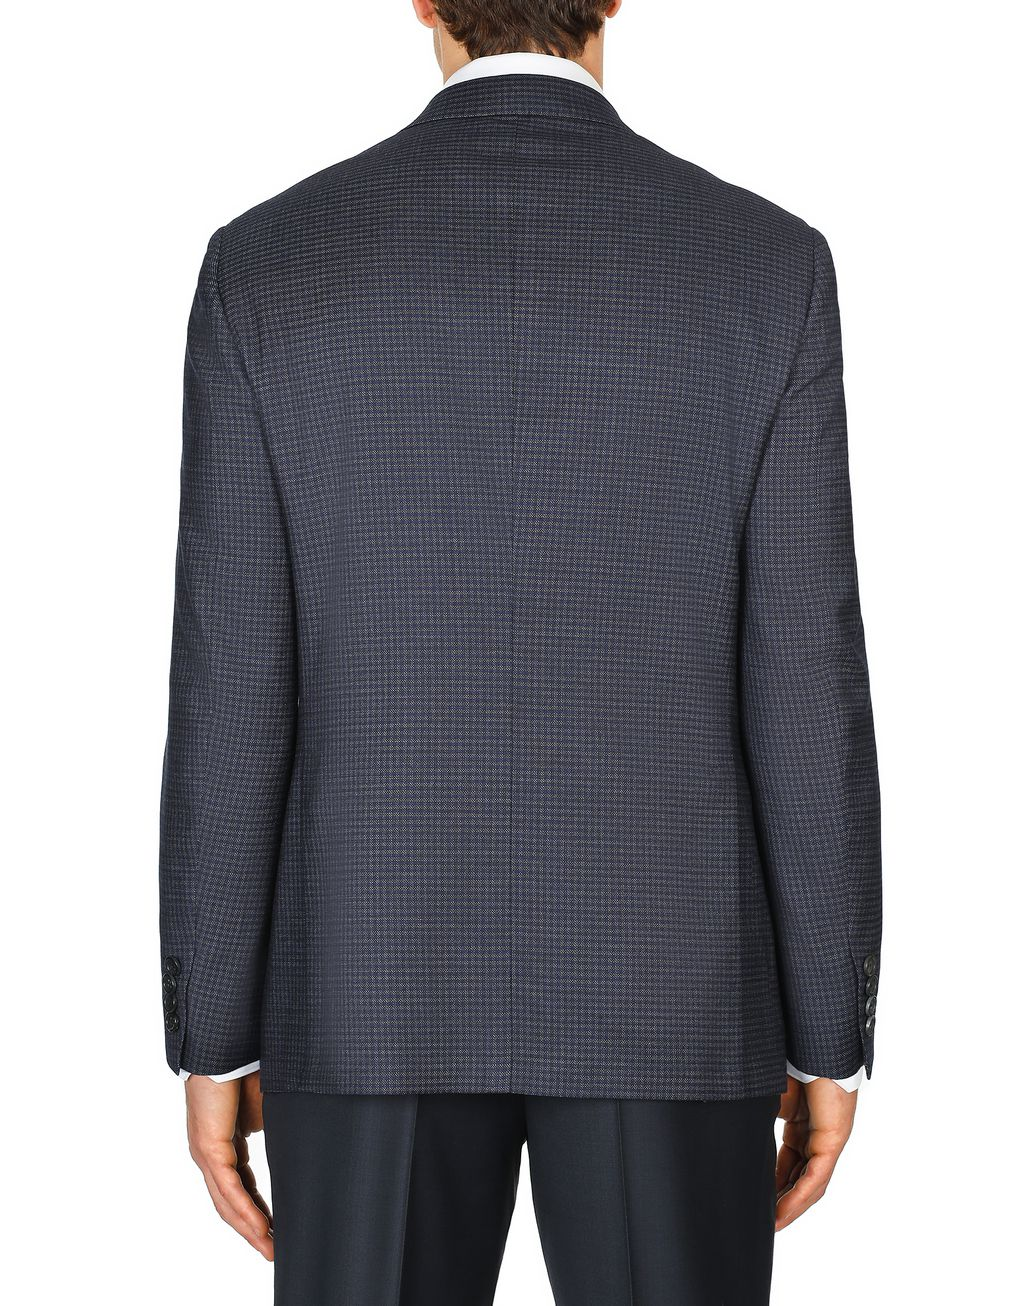 BRIONI Blue and Grey Micro-Check Ventiquattro Ravello Jacket Suits & Jackets Man d